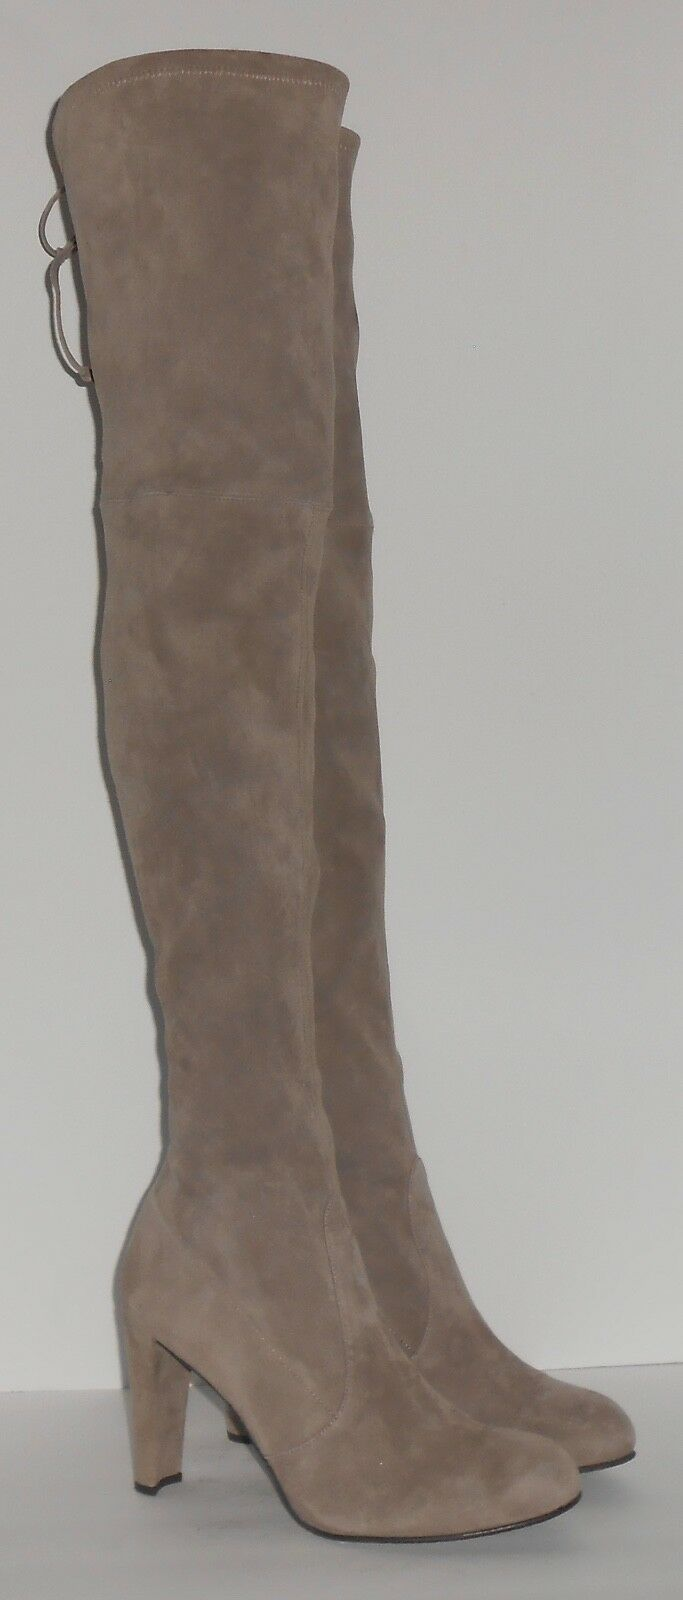 Stuart Weitzman Highland Over the knee Suede Suede Suede Taupe Size 11 88c648